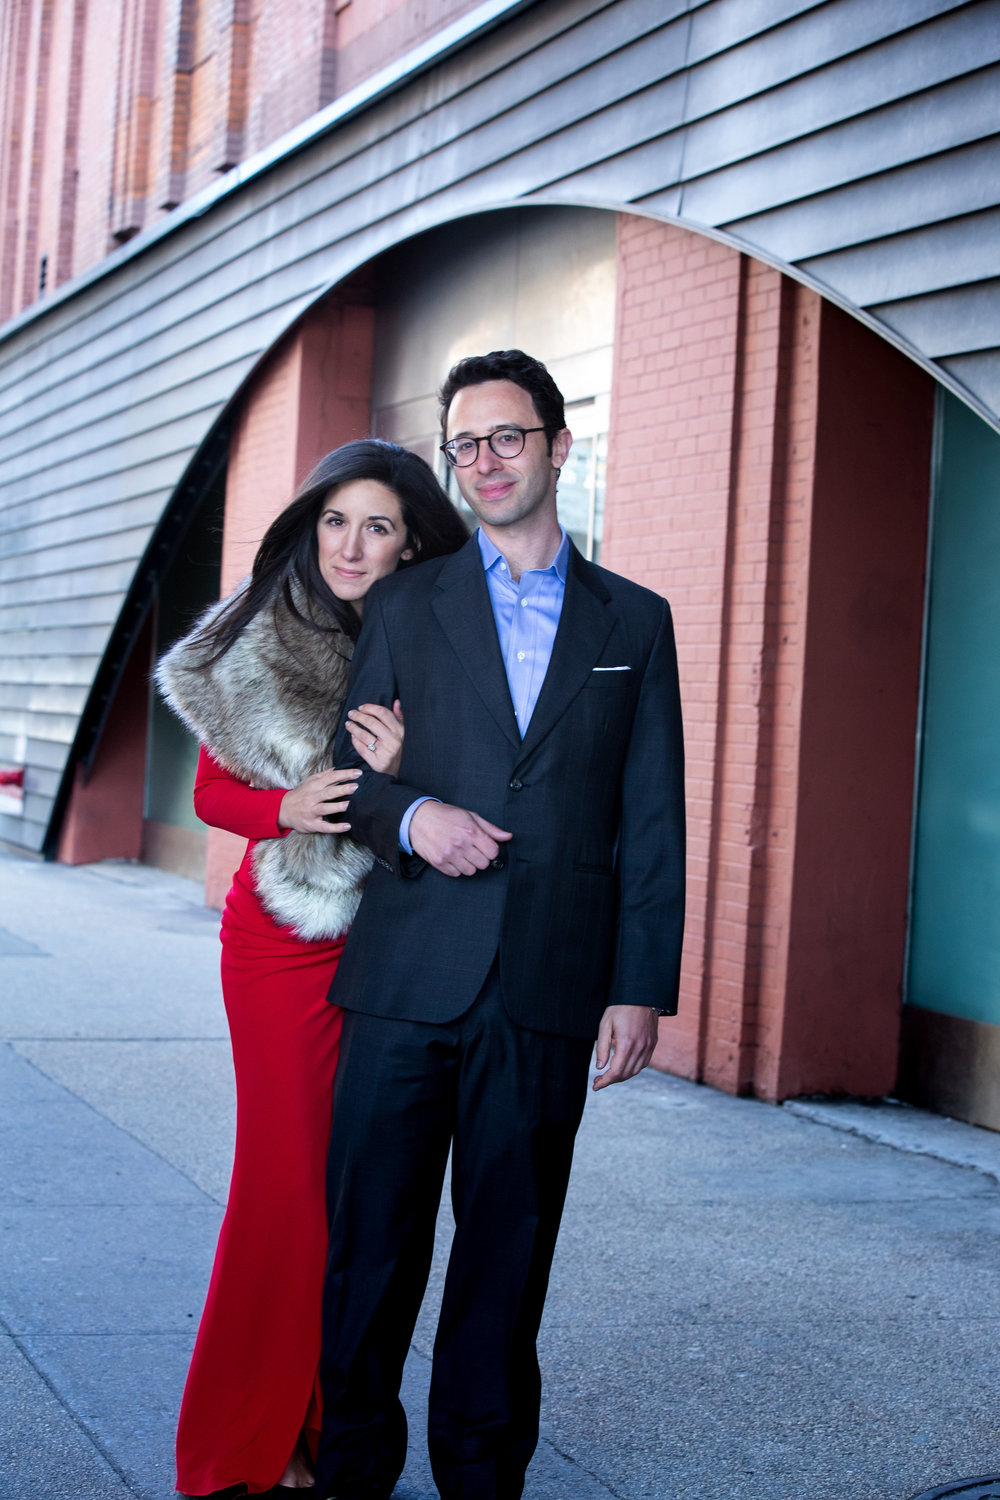 engagement-shoot-meat-packing-district-nyc-300.jpg